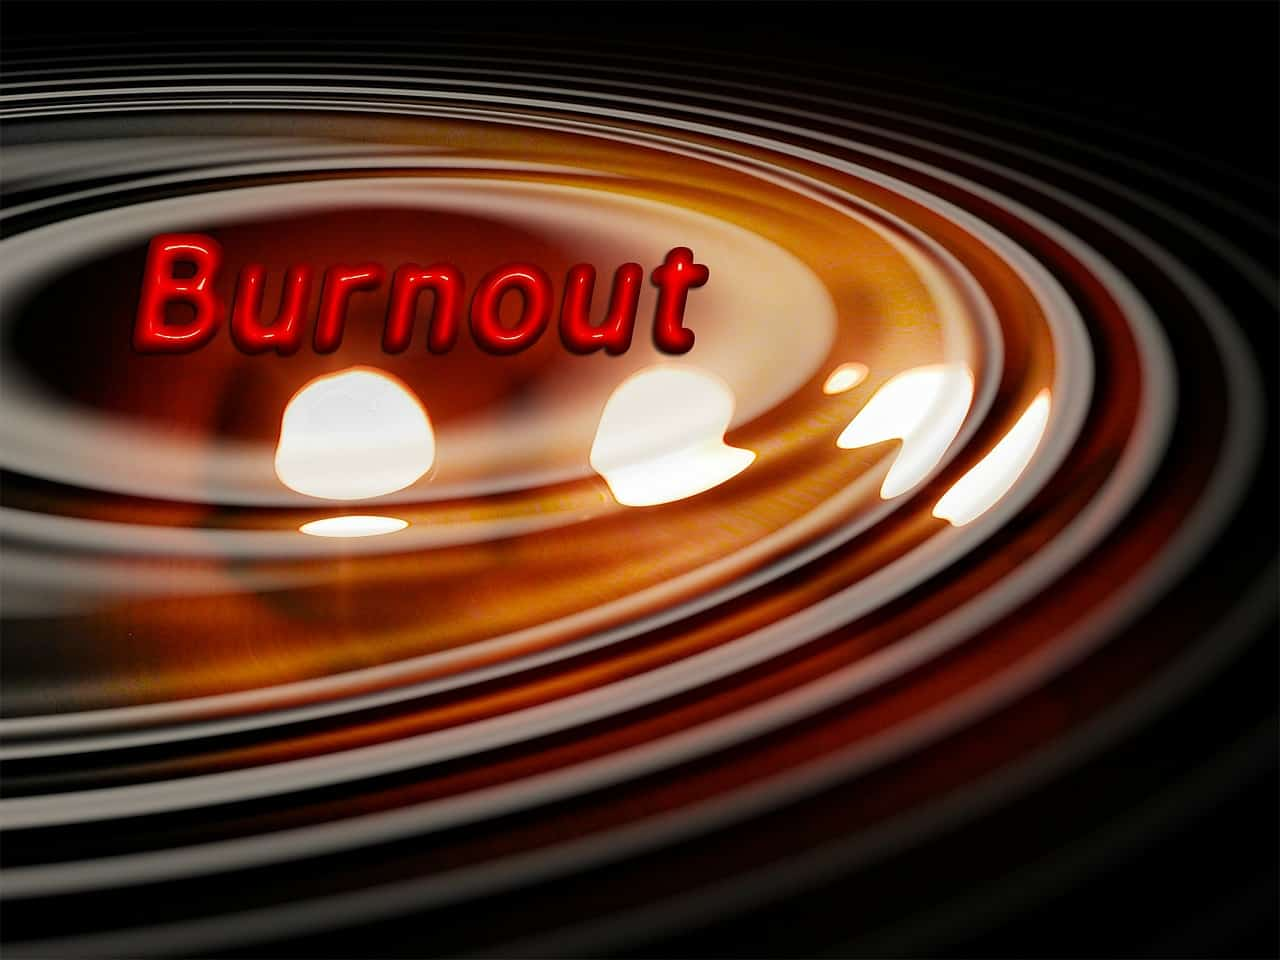 Chronic stress leads to burnout